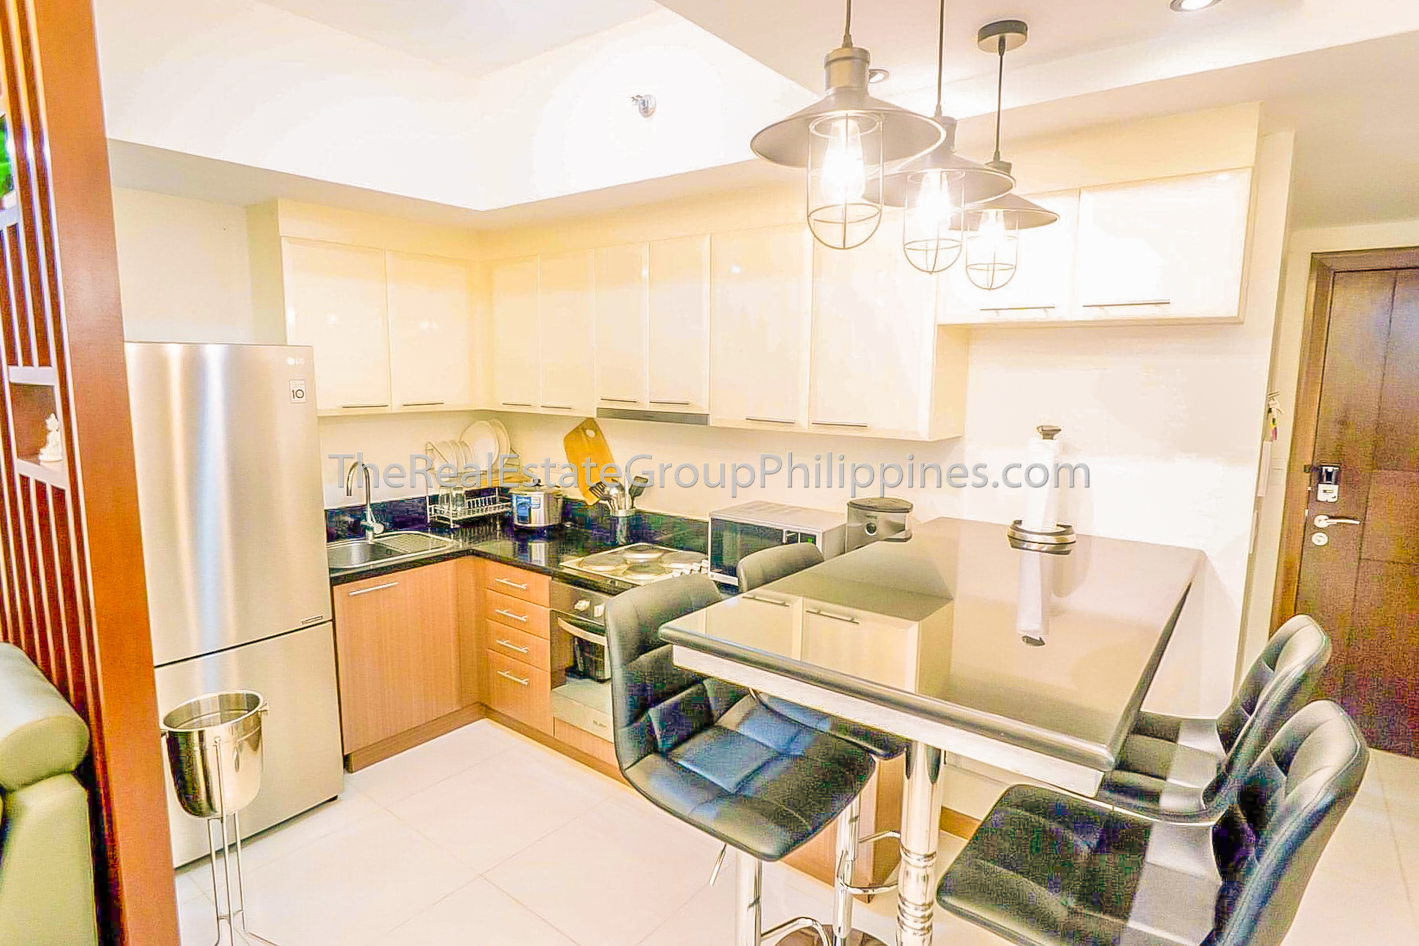 2BR Condo For Sale Venice Residences McKinley Hill Taguig (9 of 10)